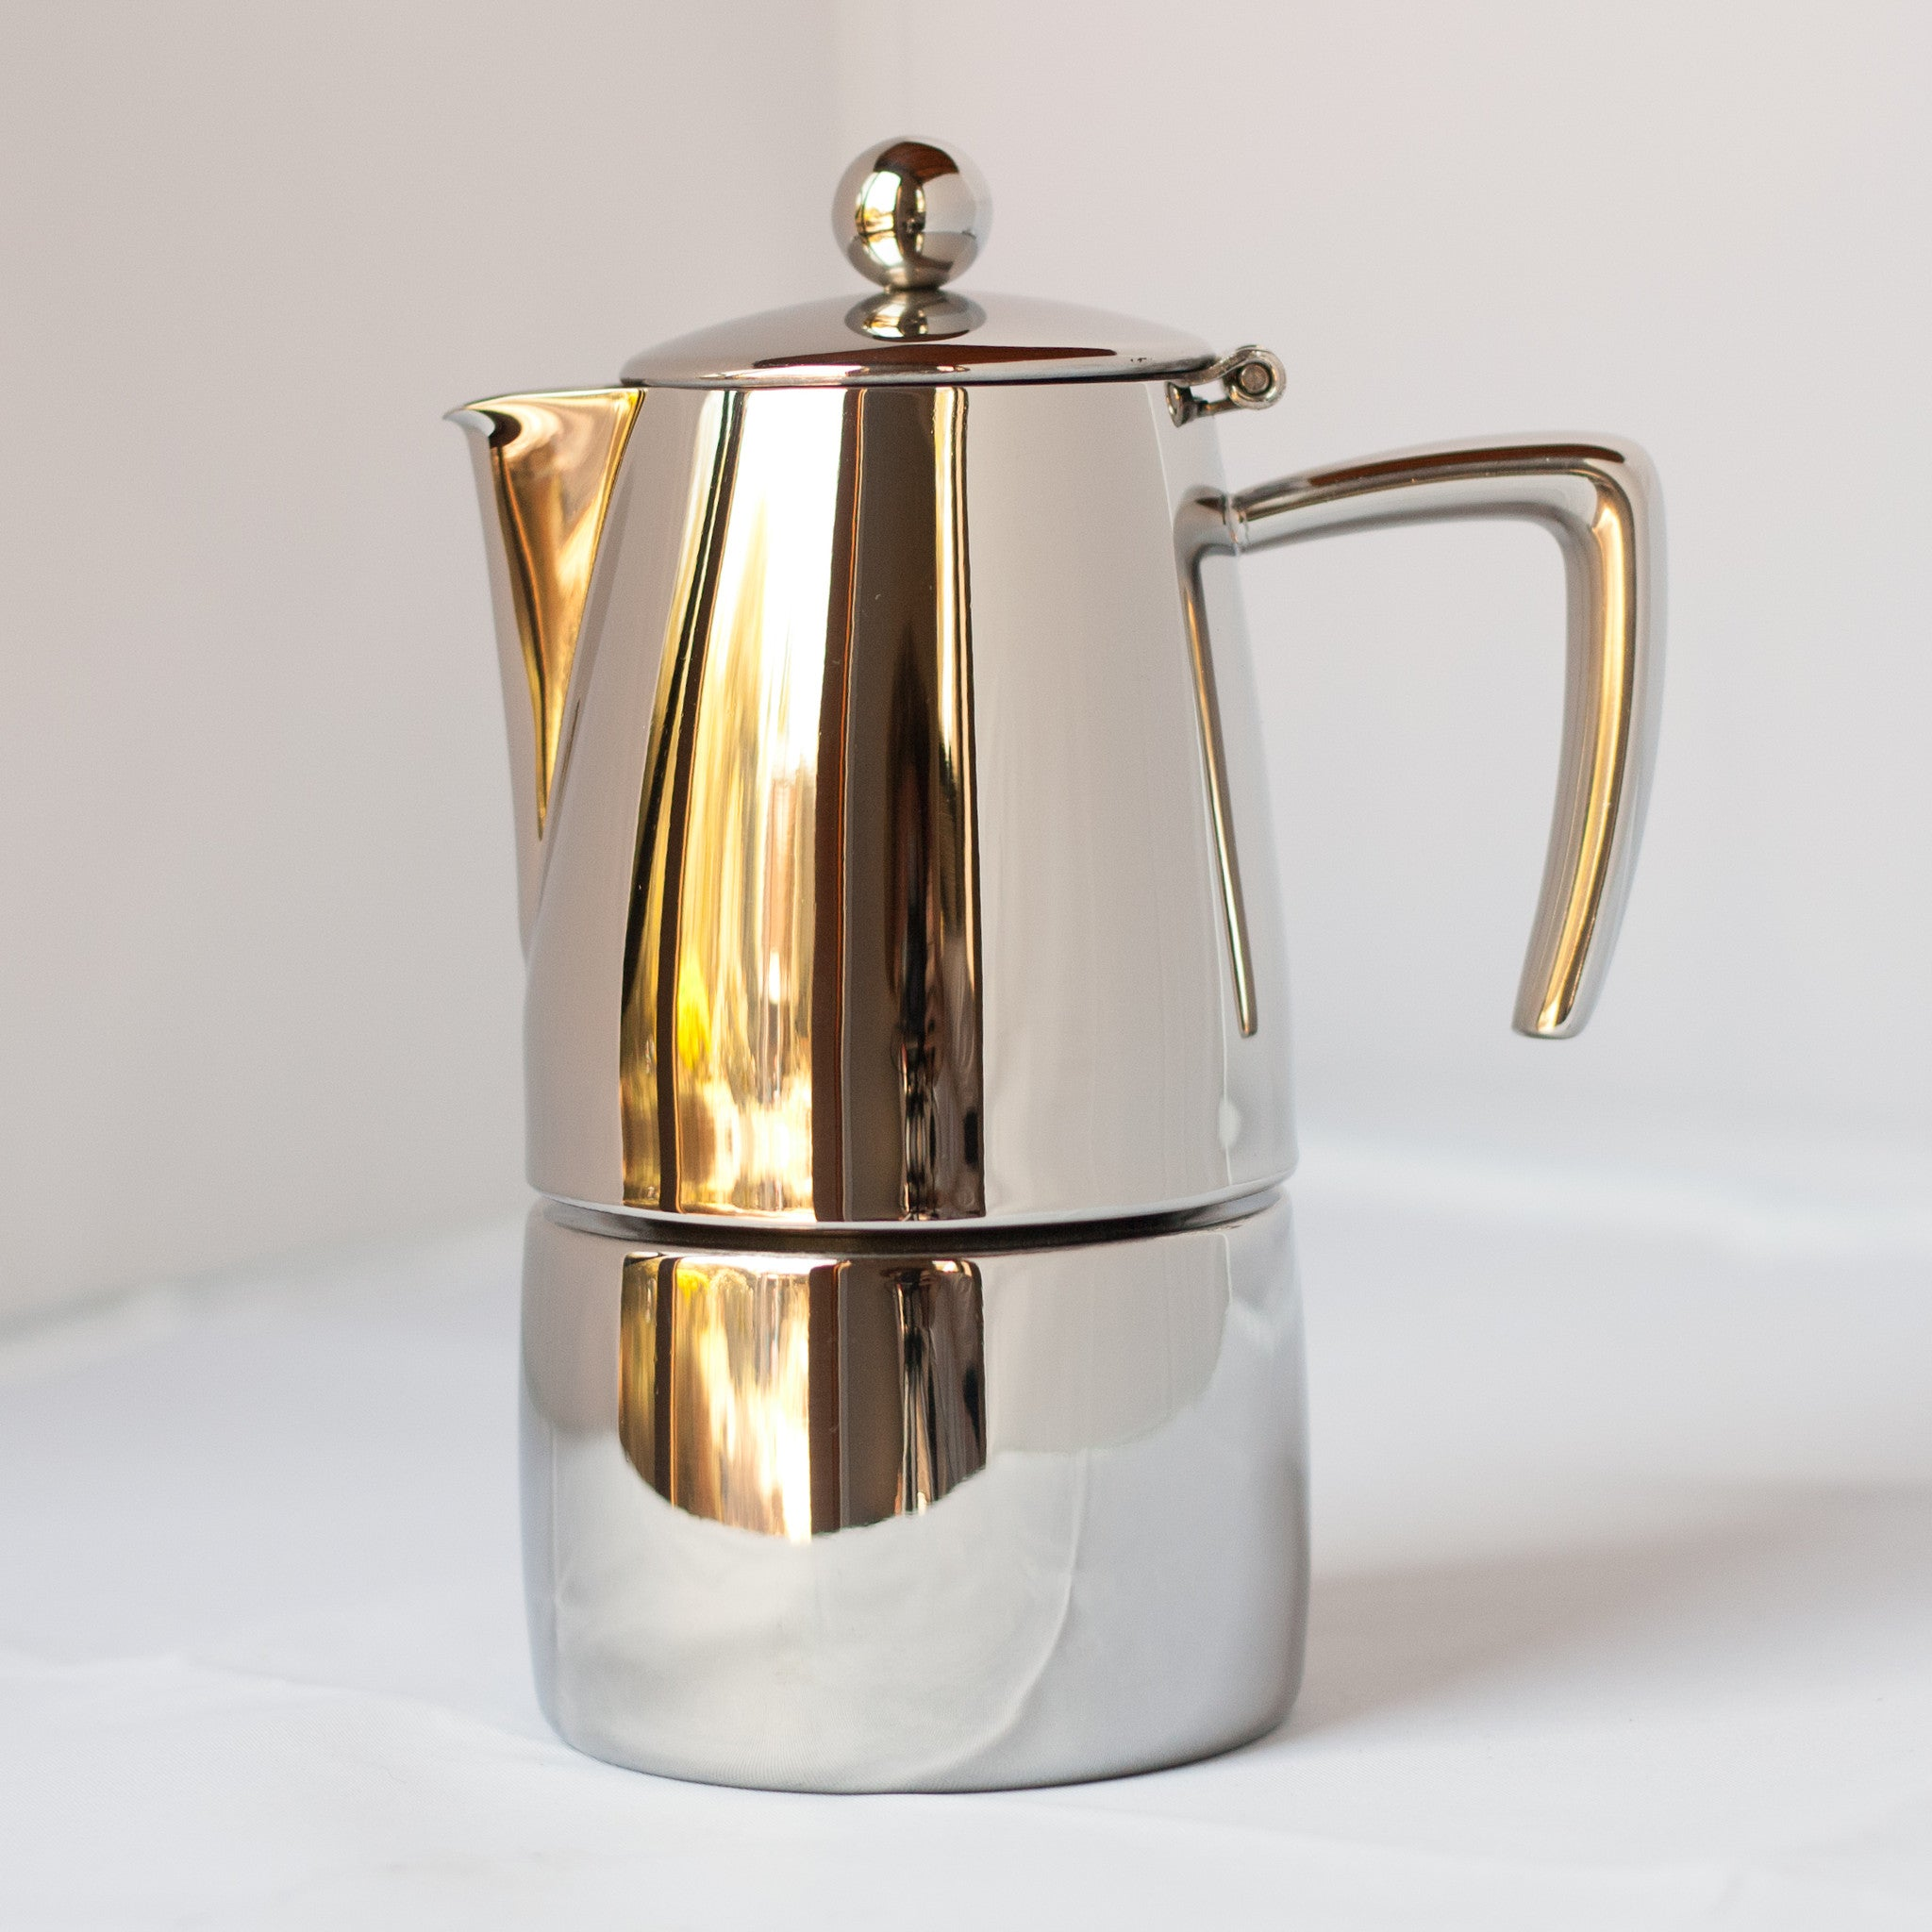 Avanti Art Deco Stainless Steel Stovetop Pot